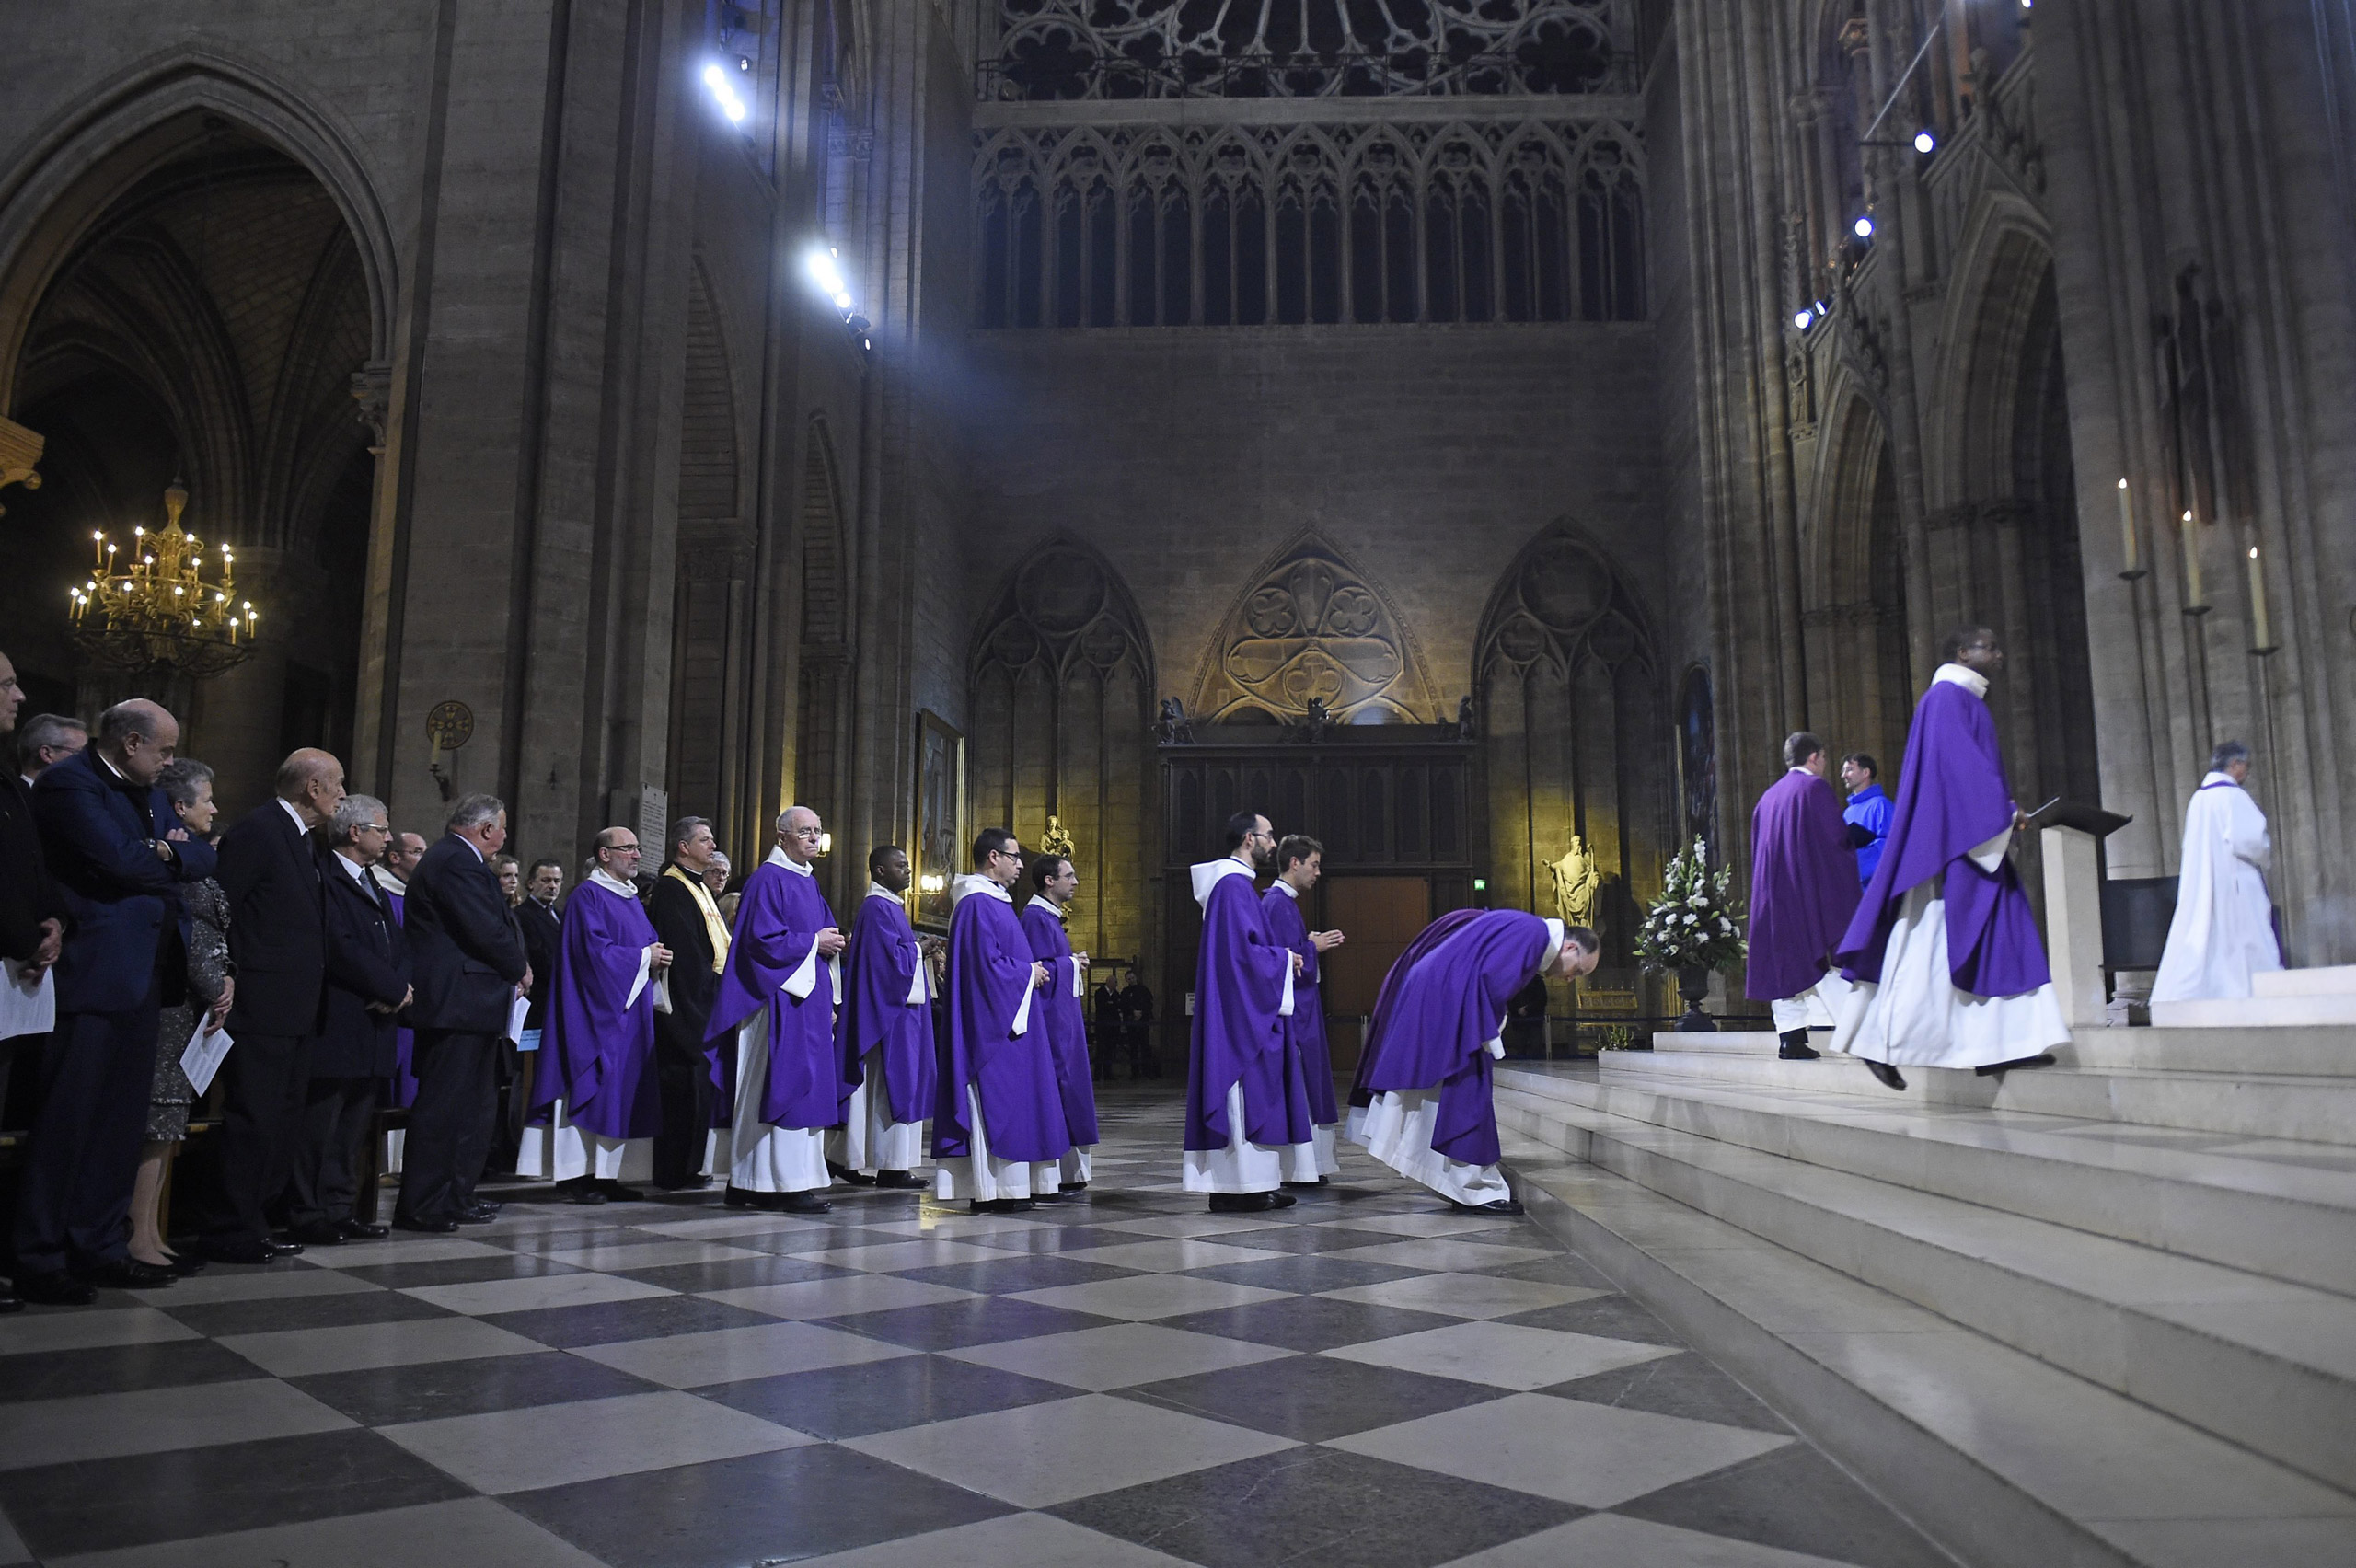 Prelates arrive to celebrate a mass in homage to the victims of the Paris attacks at the Notre Dame cathedral in Paris on Nov. 15, 2015.